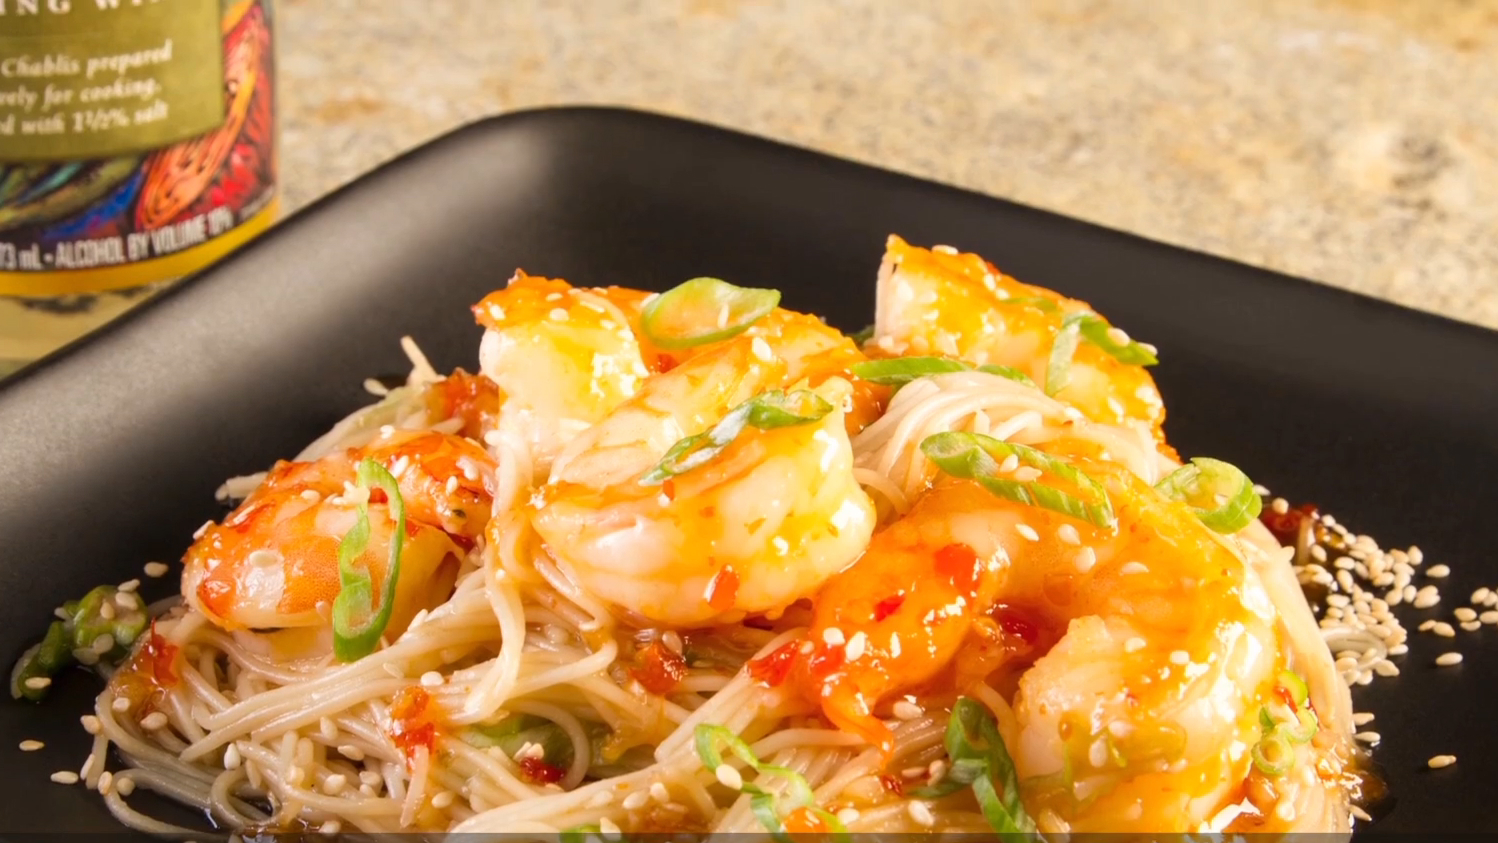 90 Second Asian Chili Shrimp Recipe With Sesame Noodles